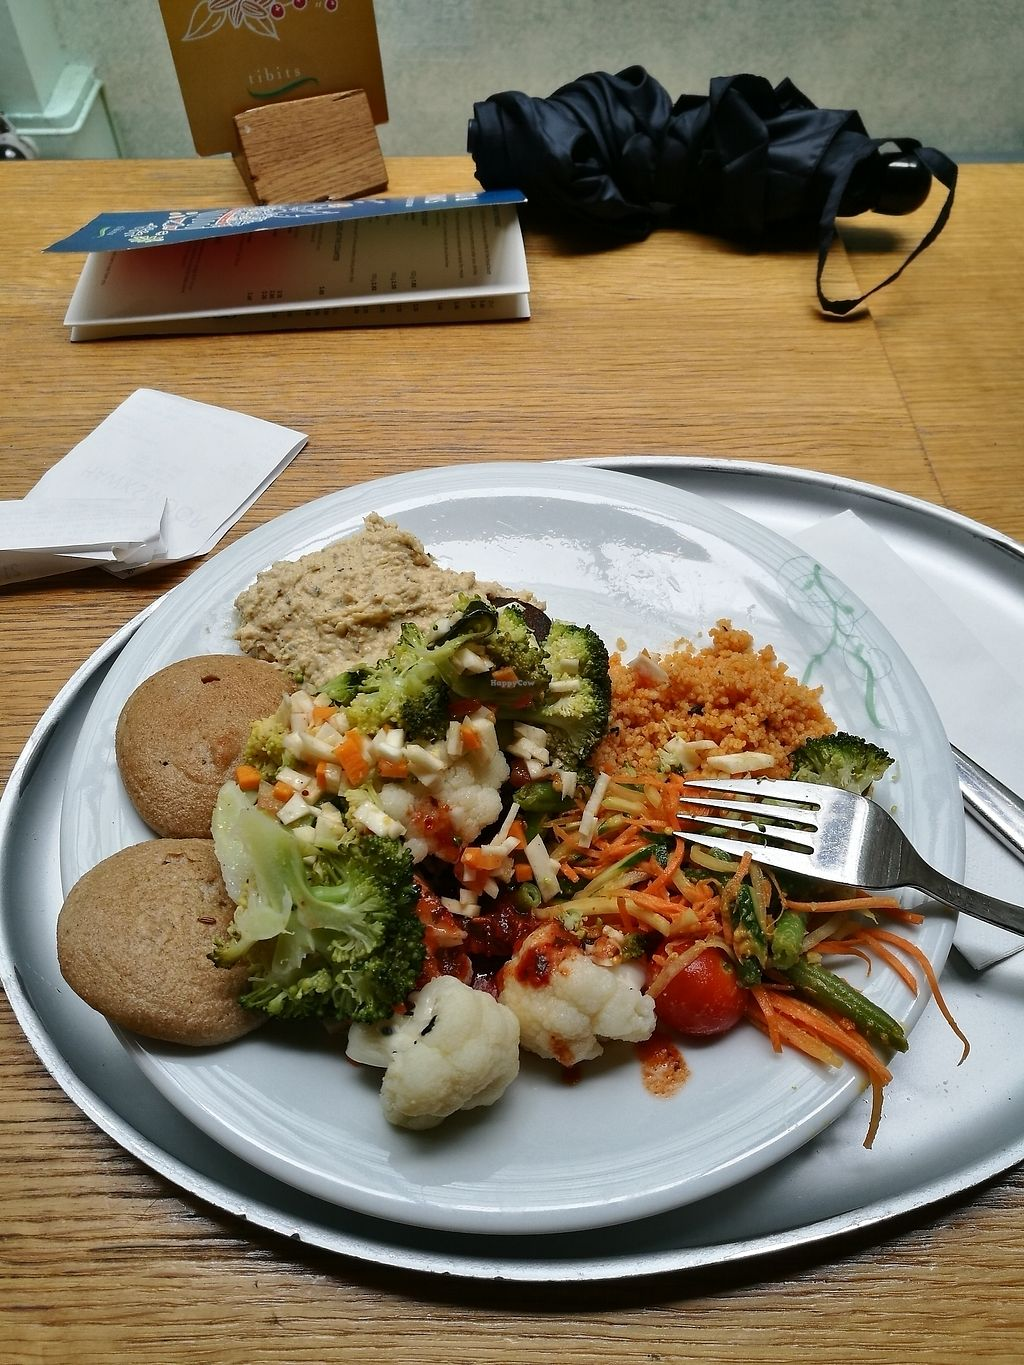 "Photo of Tibits  by <a href=""/members/profile/Hannyyy"">Hannyyy</a> <br/>Vegan Plate <br/> July 30, 2017  - <a href='/contact/abuse/image/15552/286573'>Report</a>"